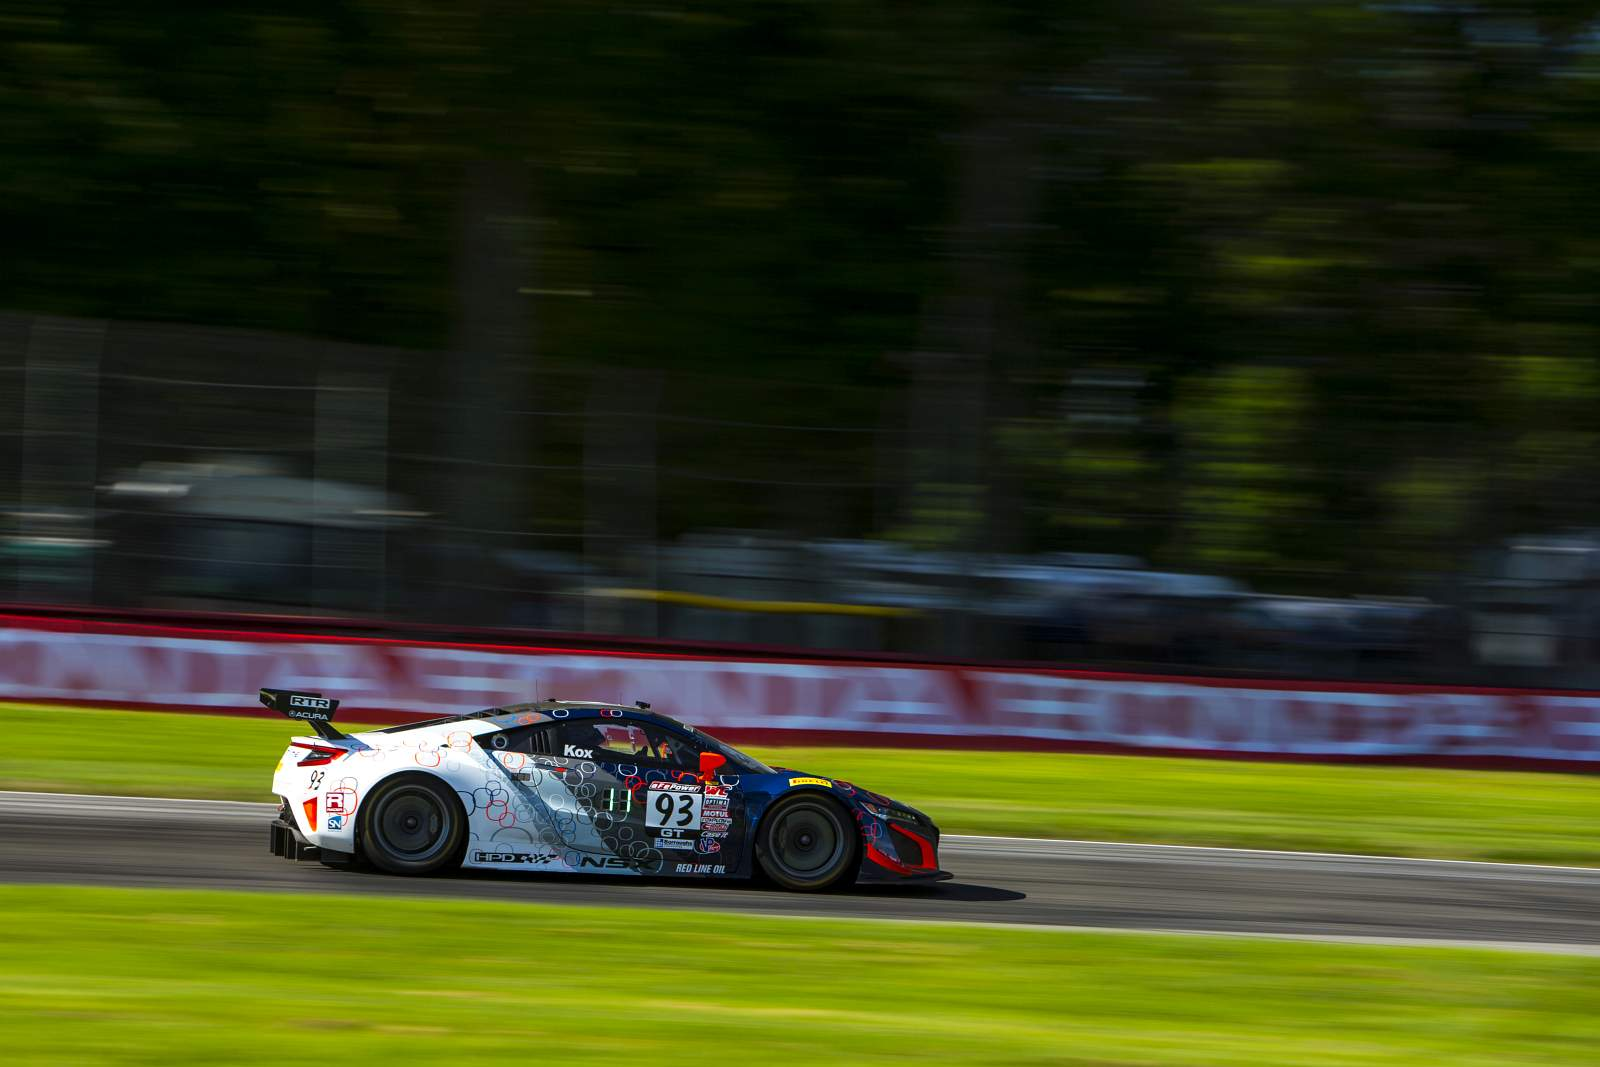 peter-kox-realtime-racing-pirelli-world-challenge-mid-ohio-80